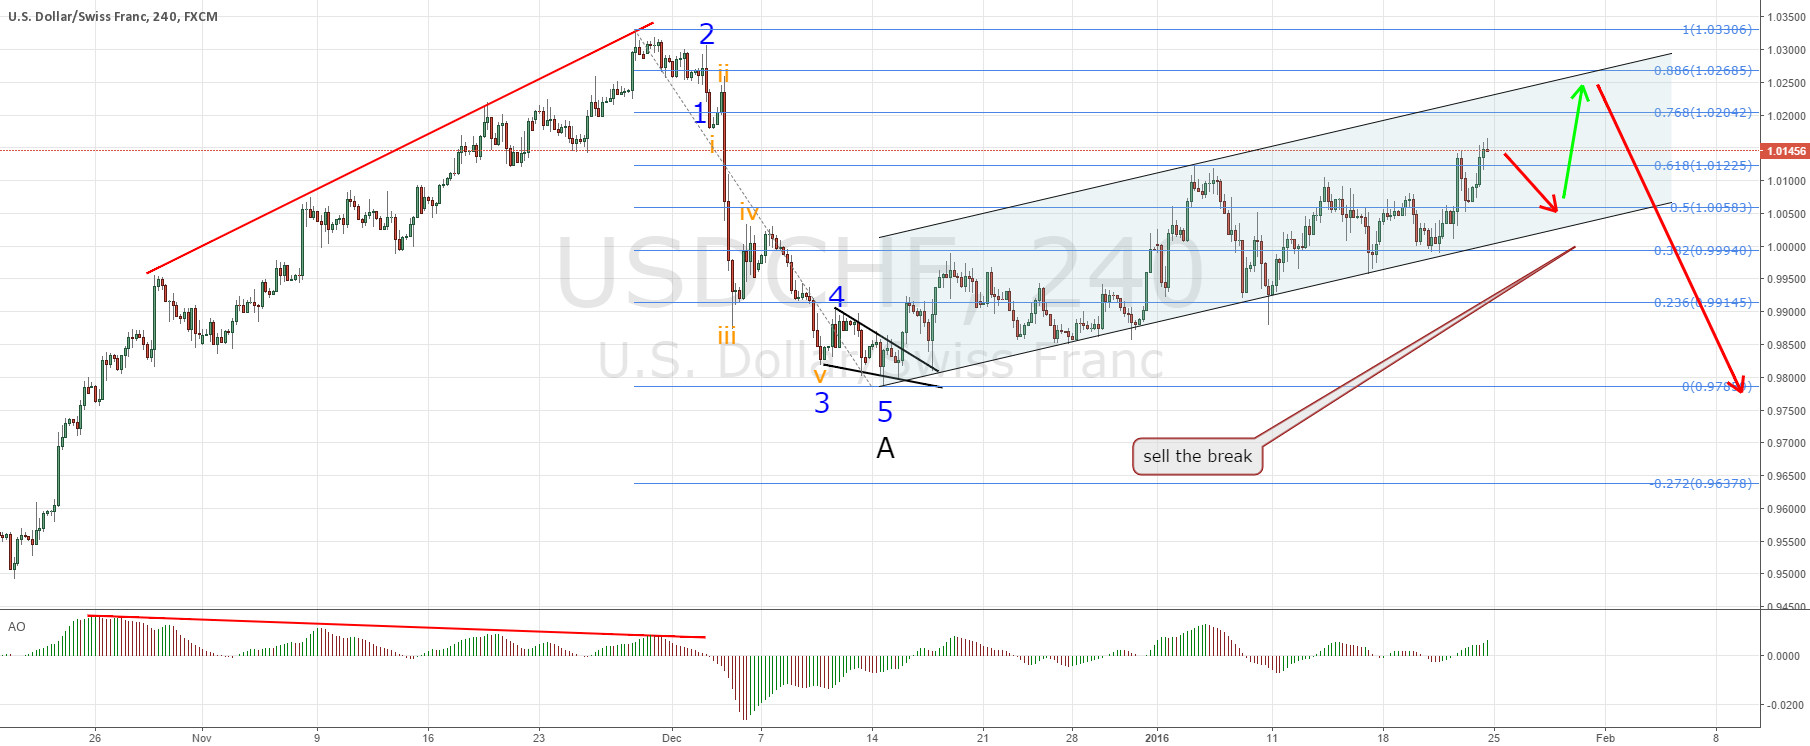 USDCHF sell the break